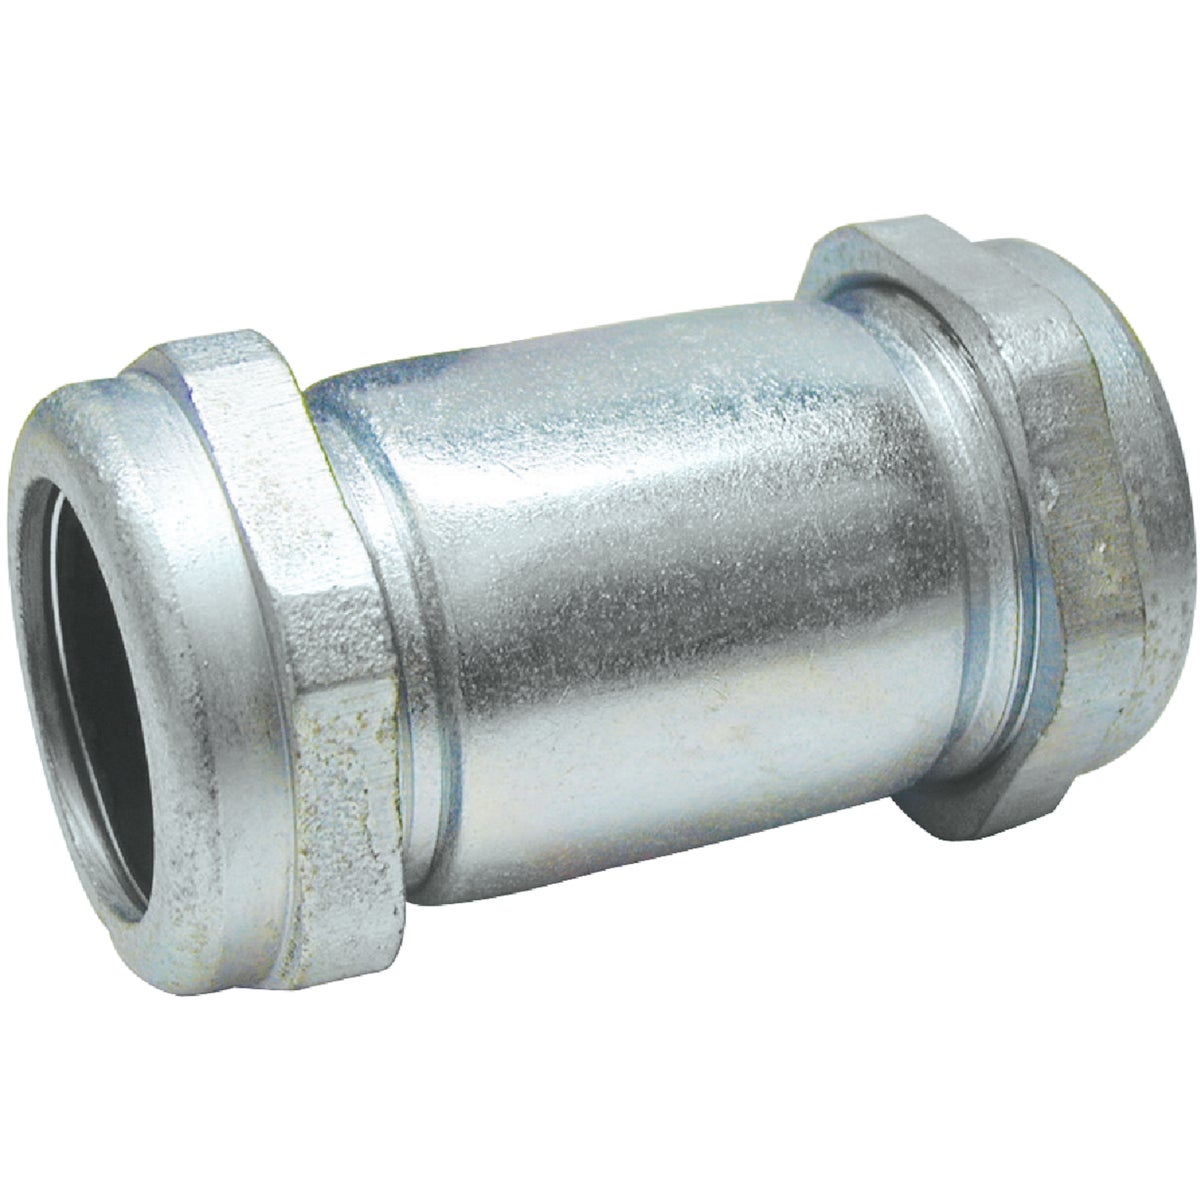 1/2X4 GALV COUPLING - 160-003 by Mueller B K